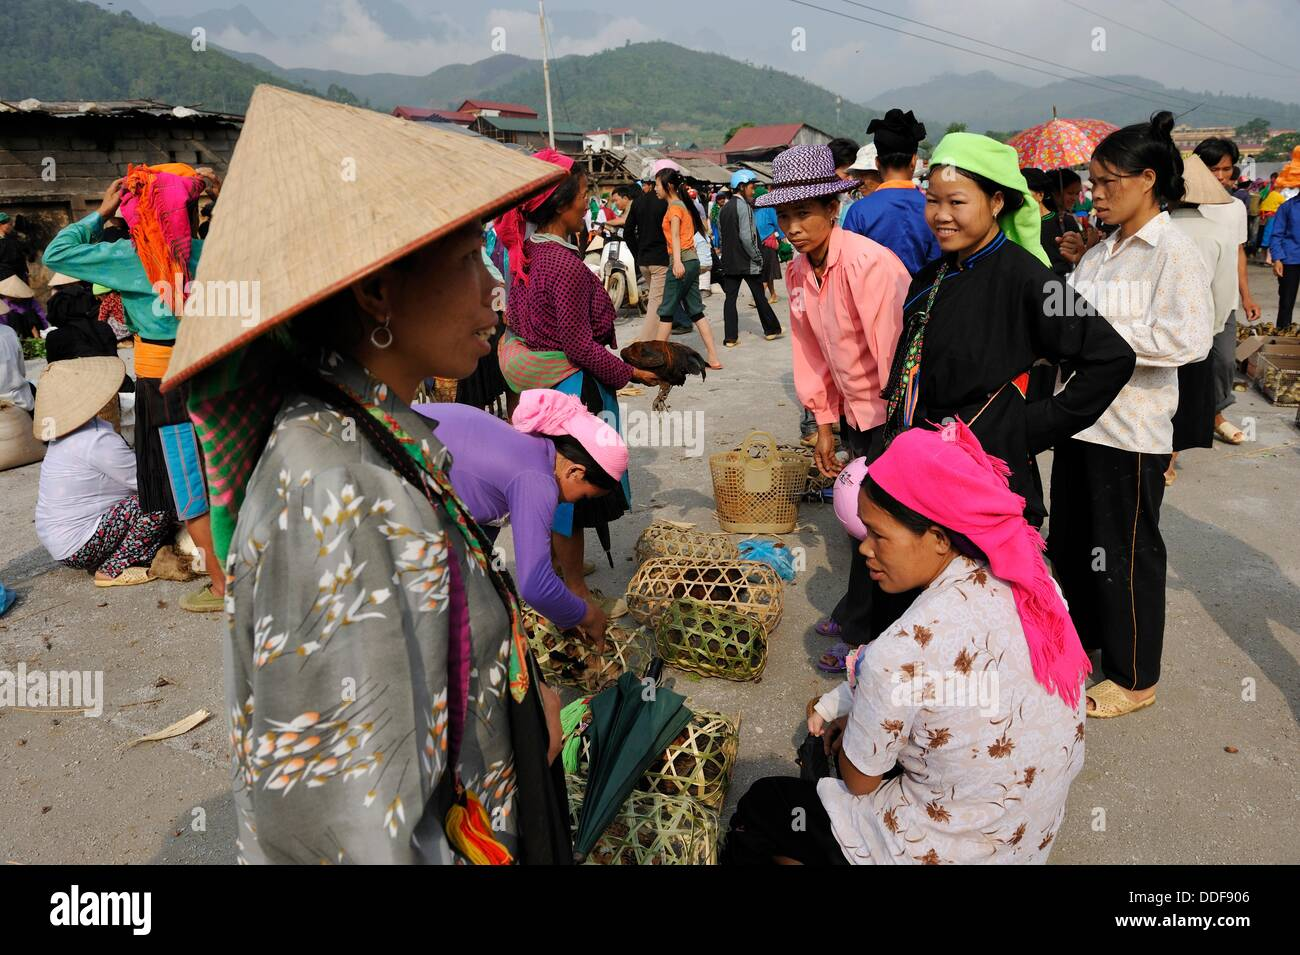 women from ethnic minority at the market of Yen Minh, Ha Giang province, Northern Vietnam, southeast asia - Stock Image